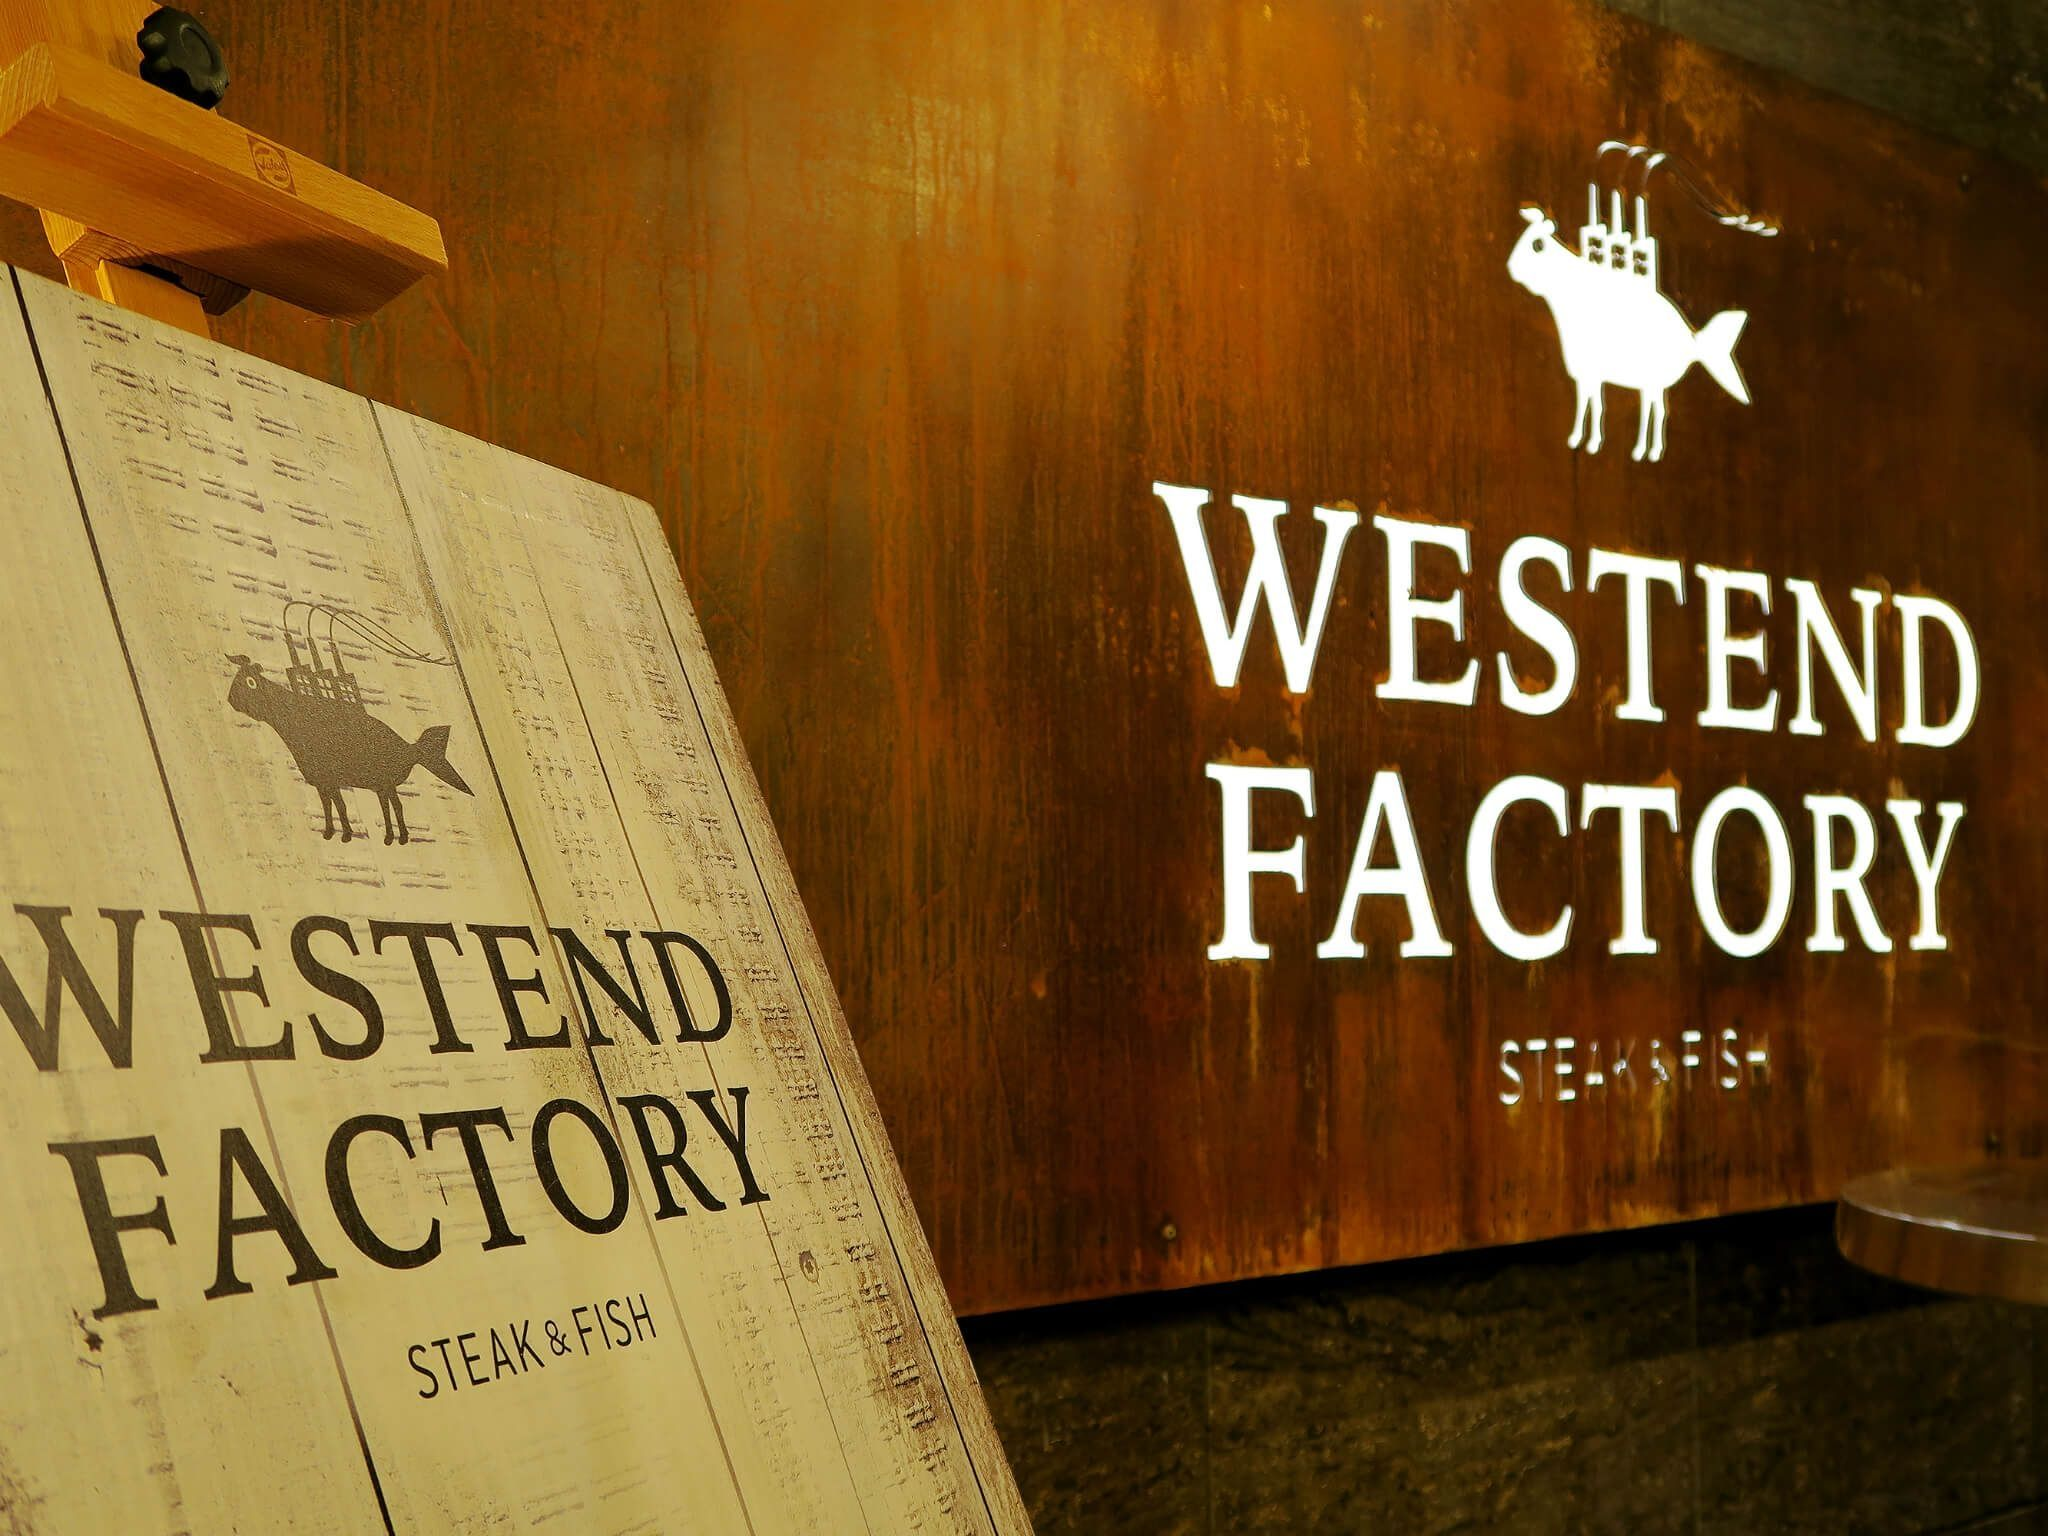 Westend Factory Steak and Fish Restaurant Munich